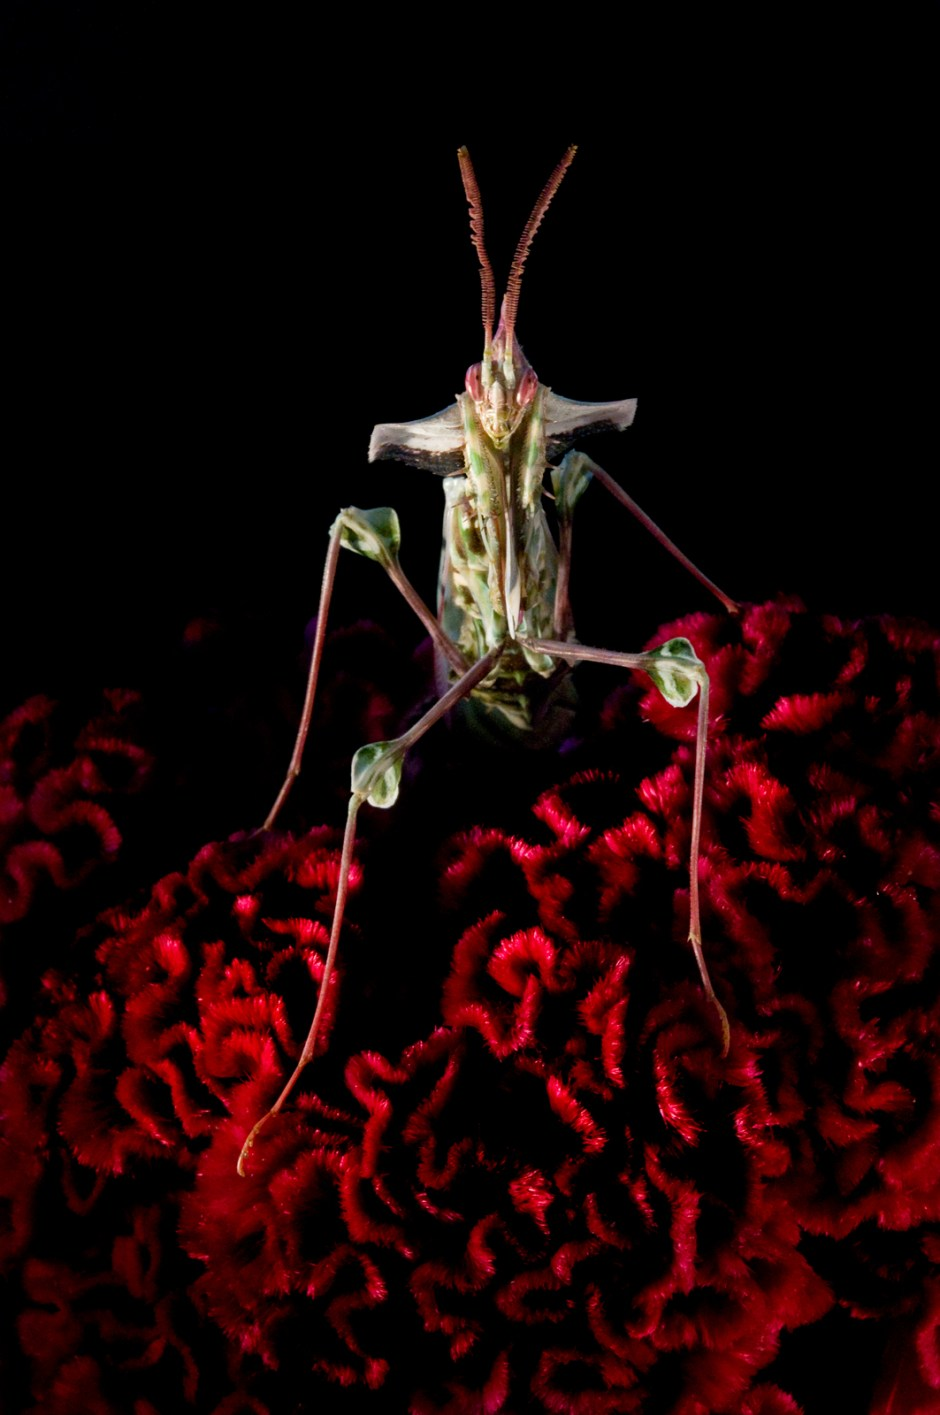 Devil's_Flower_Mantis_©_Kristin_Lingren